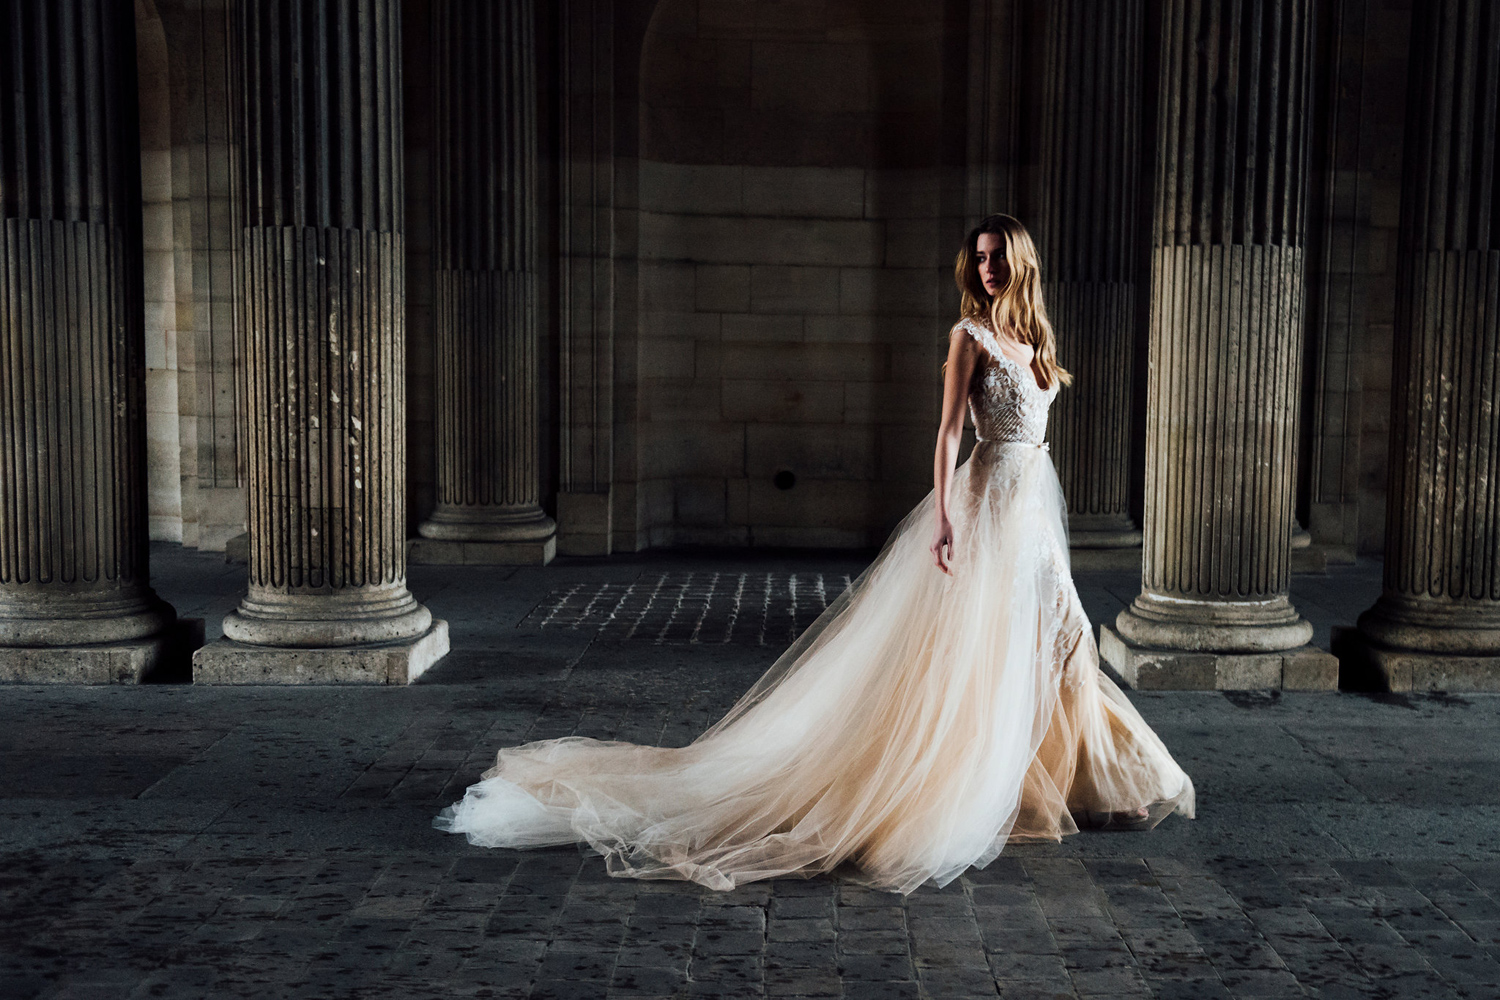 katie mitchell monique lhuillier bridal paris france wedding photographer_12.jpg